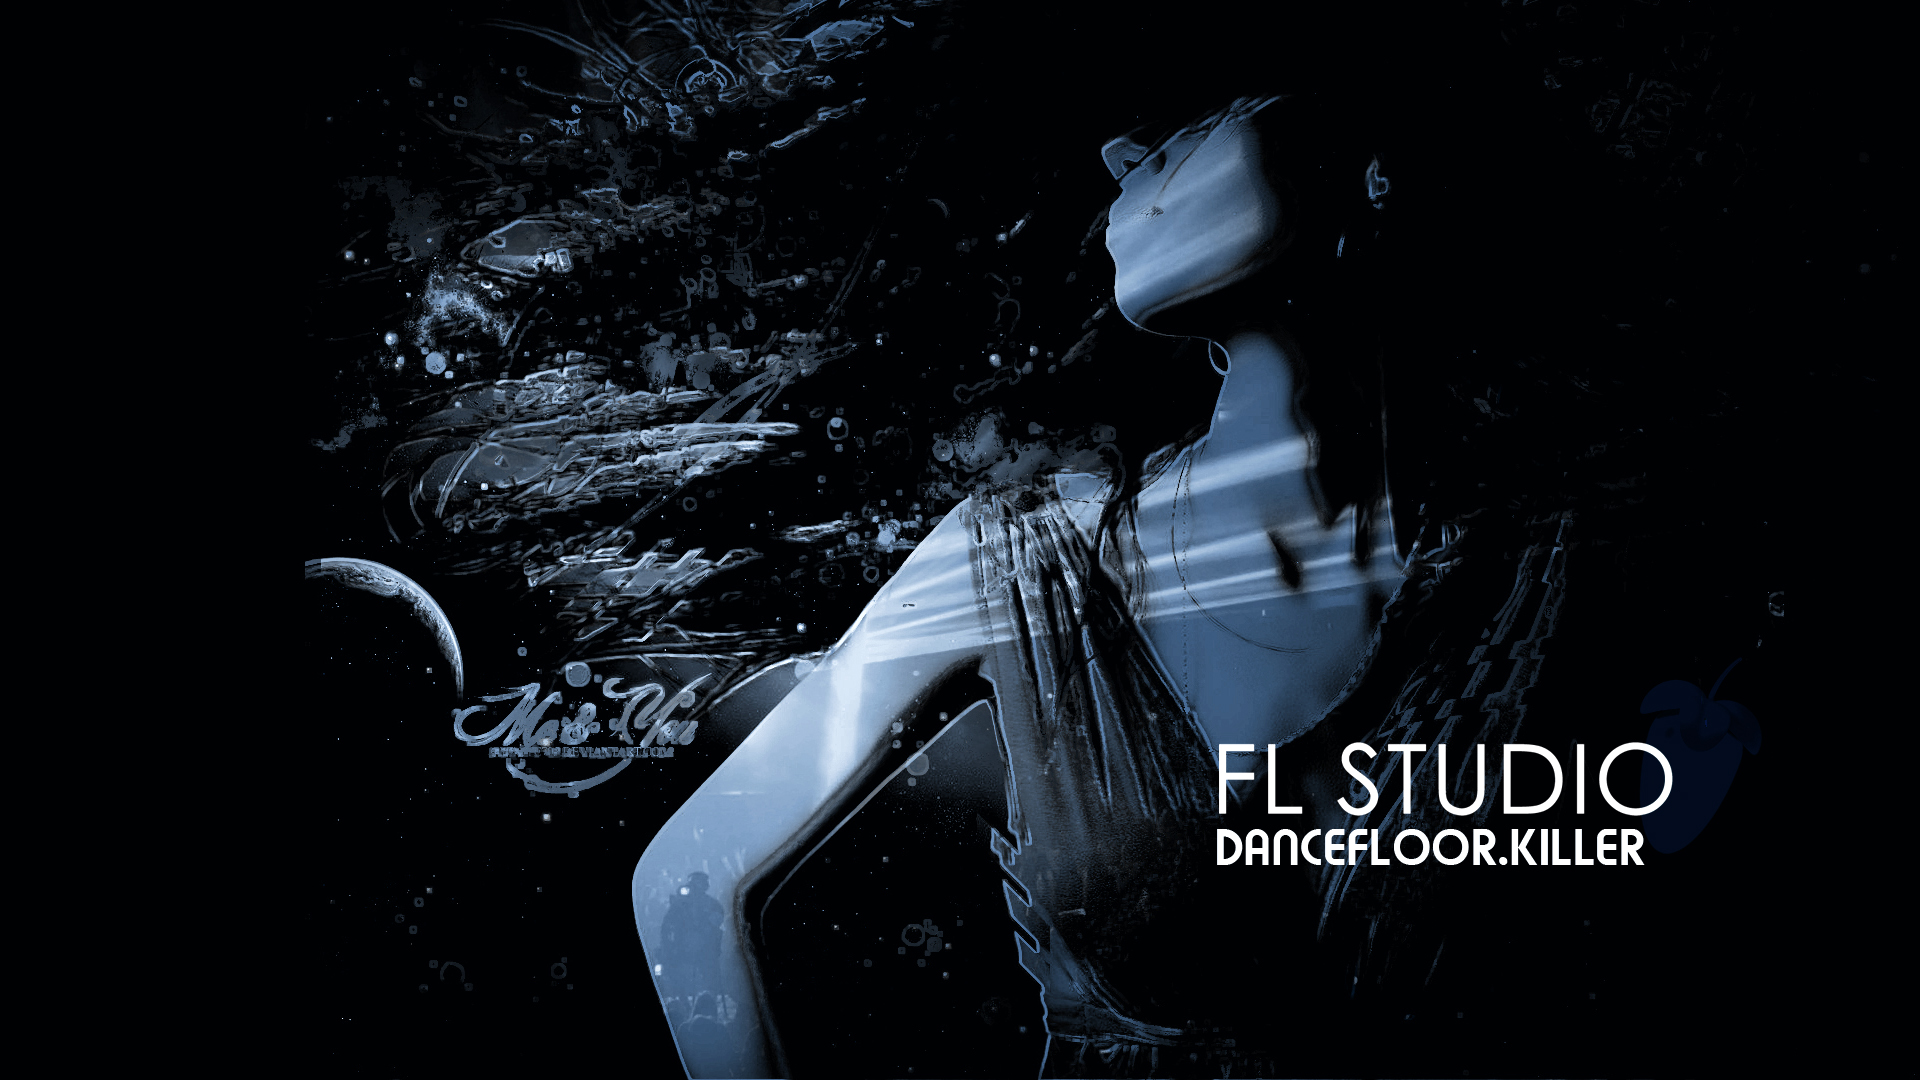 Fl Studio Background Image Wallpaper By Grooveagent On